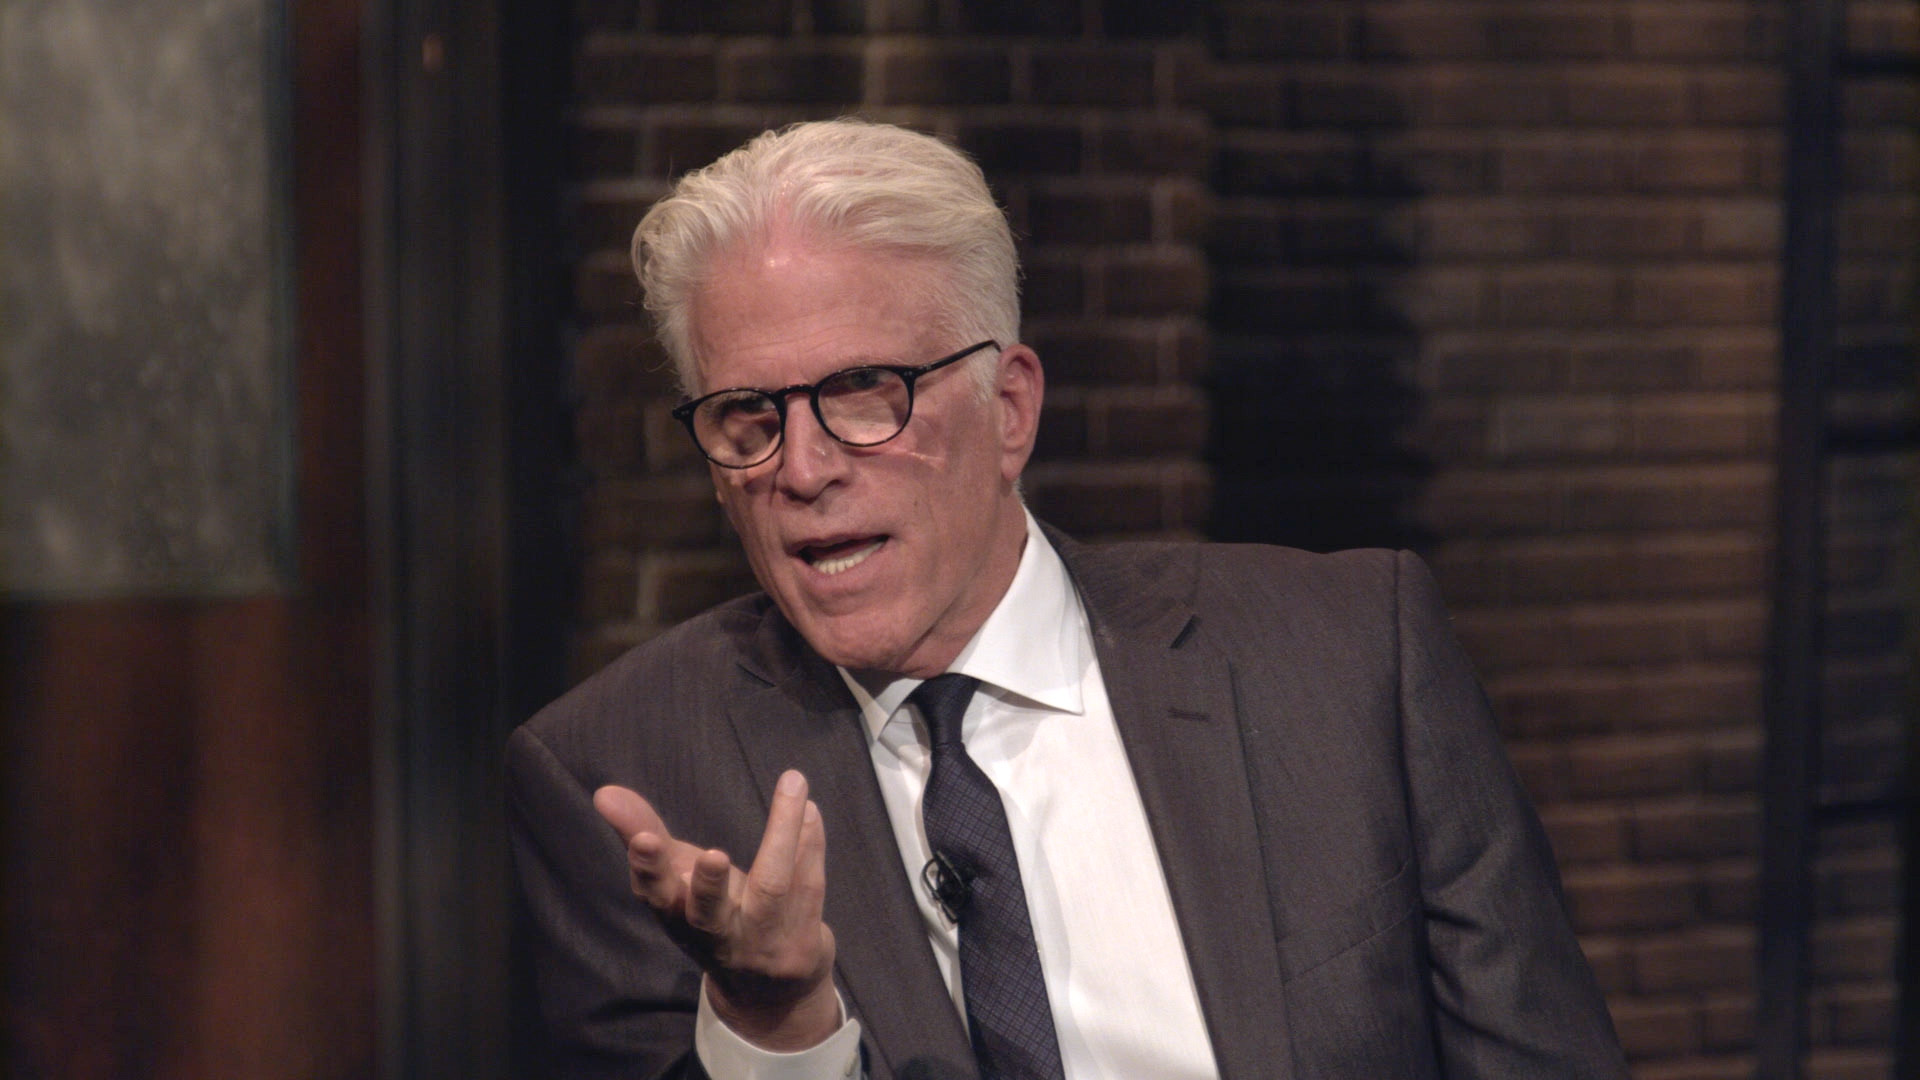 Ted Danson on How He Got Involved with Ocean Conservation